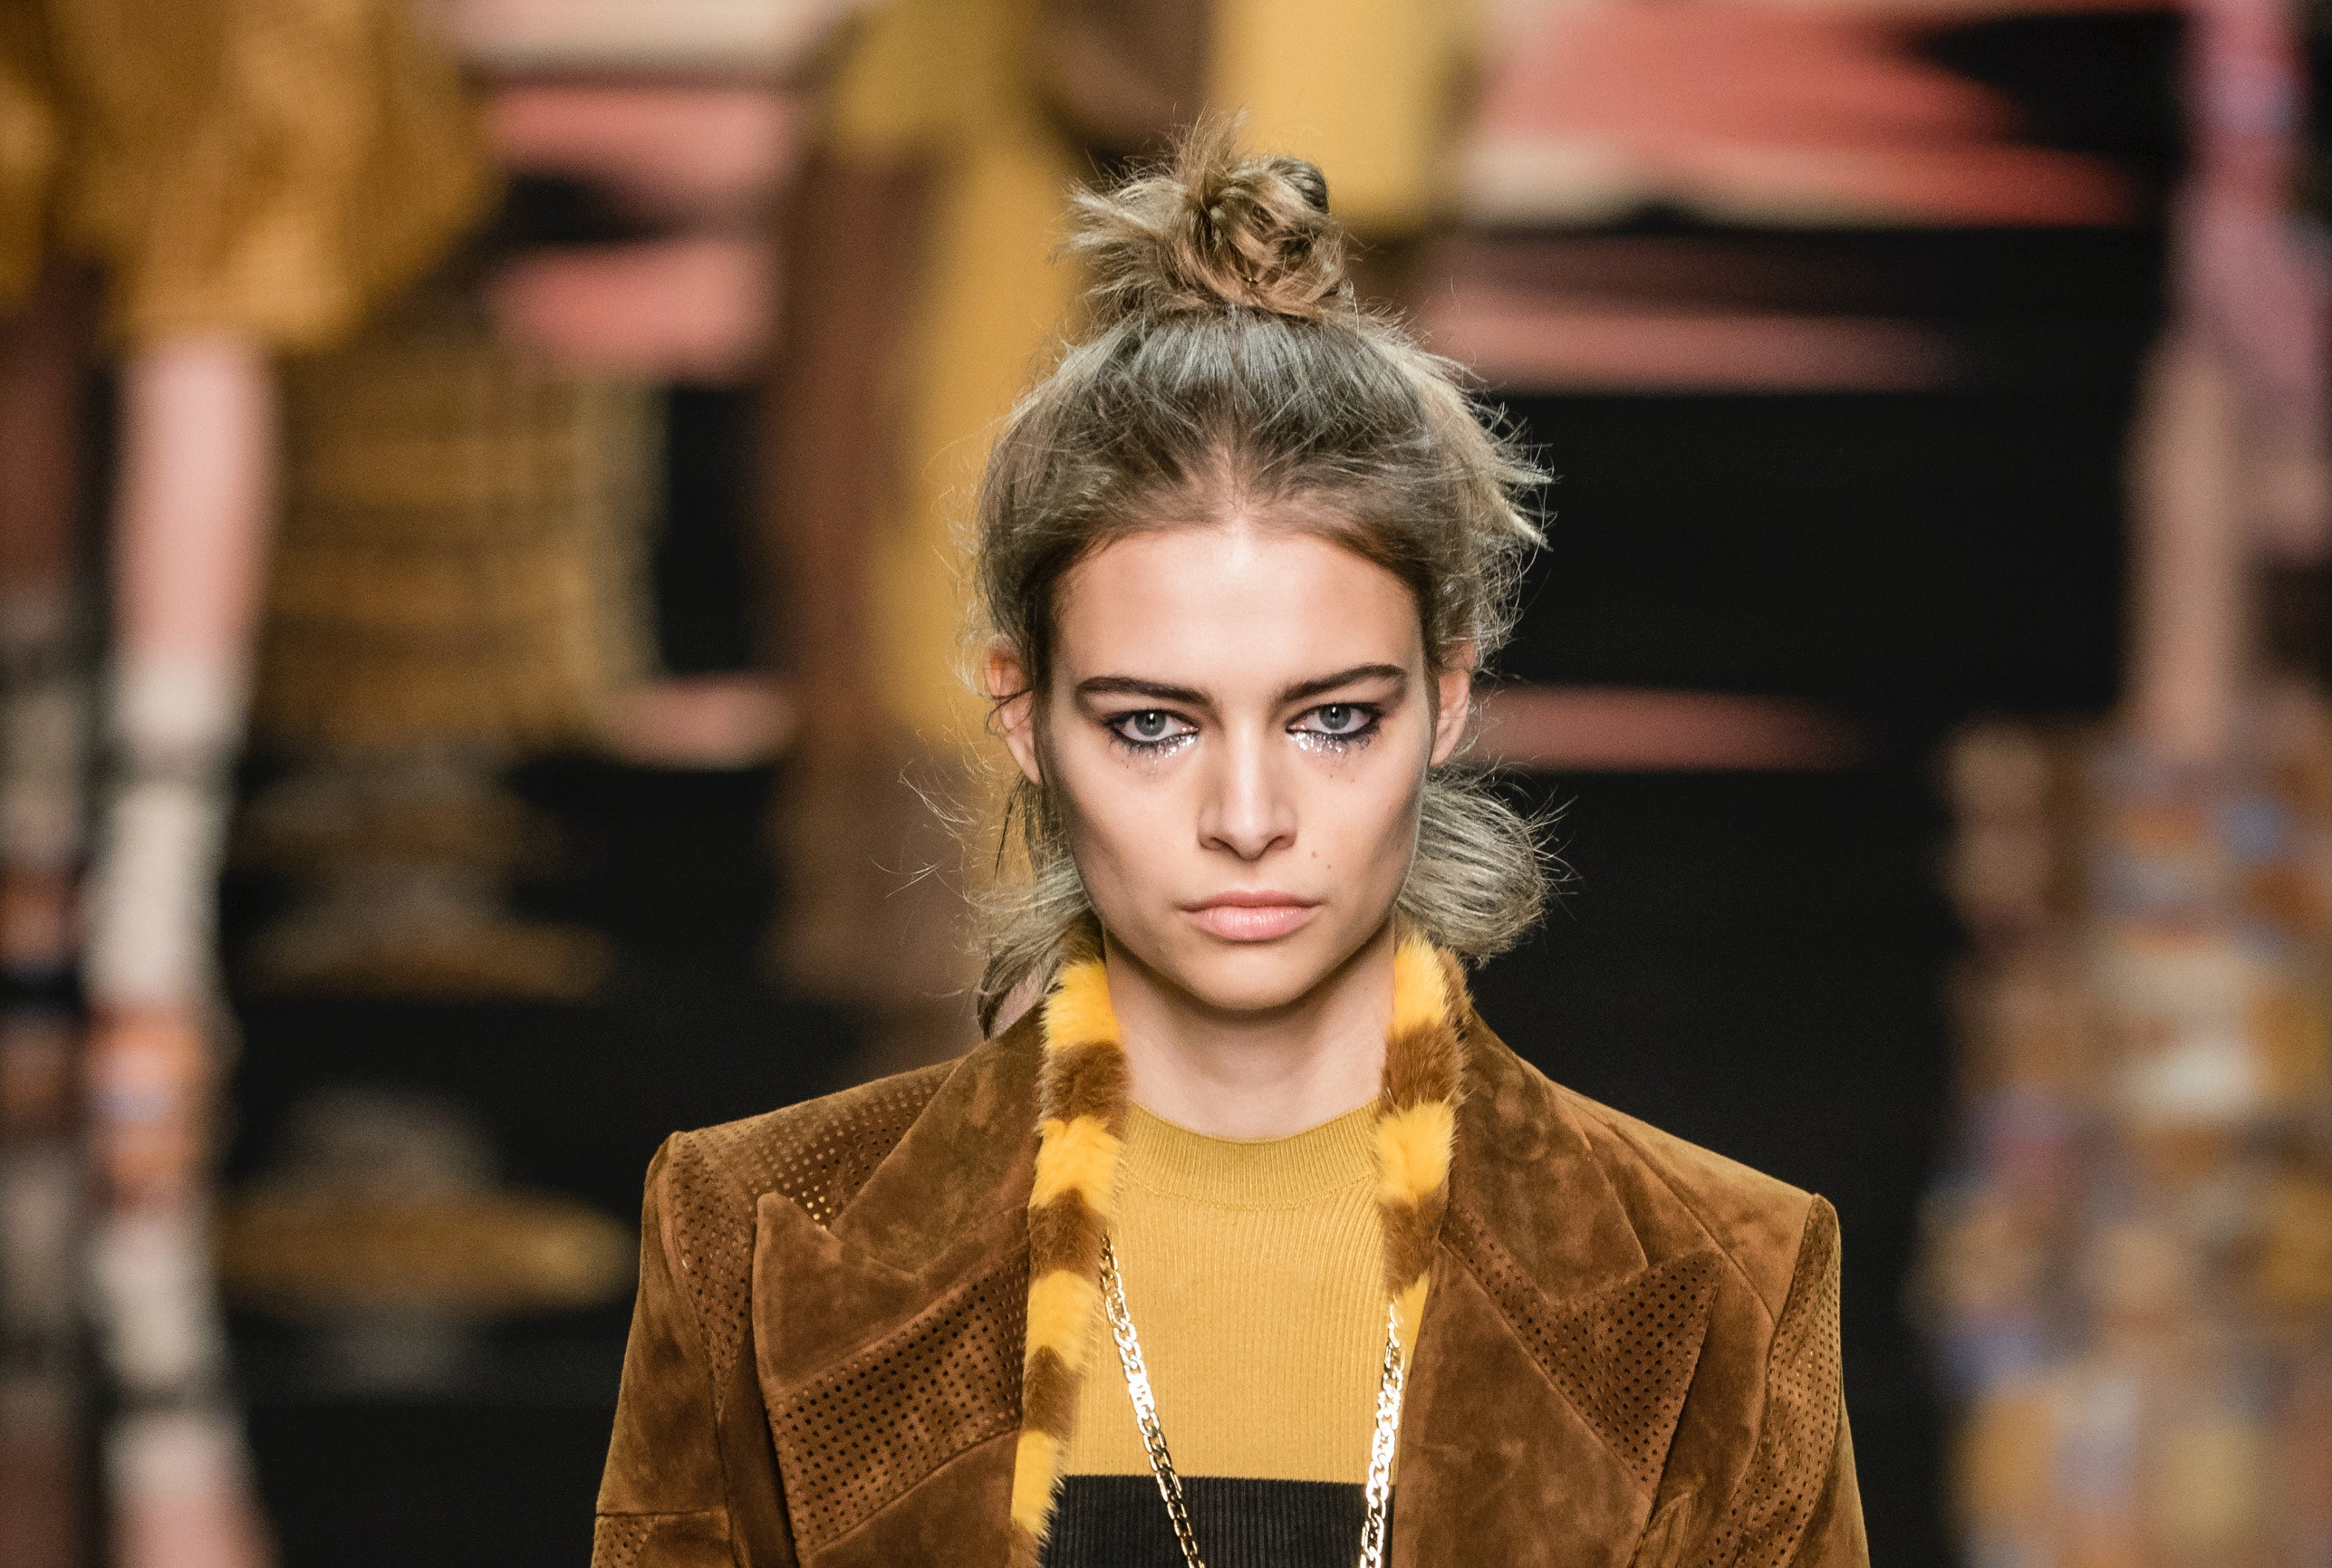 6 Milan Fashion Week Spring/Summer 2020 Hair Trends That Are Simple & Oh So Chic